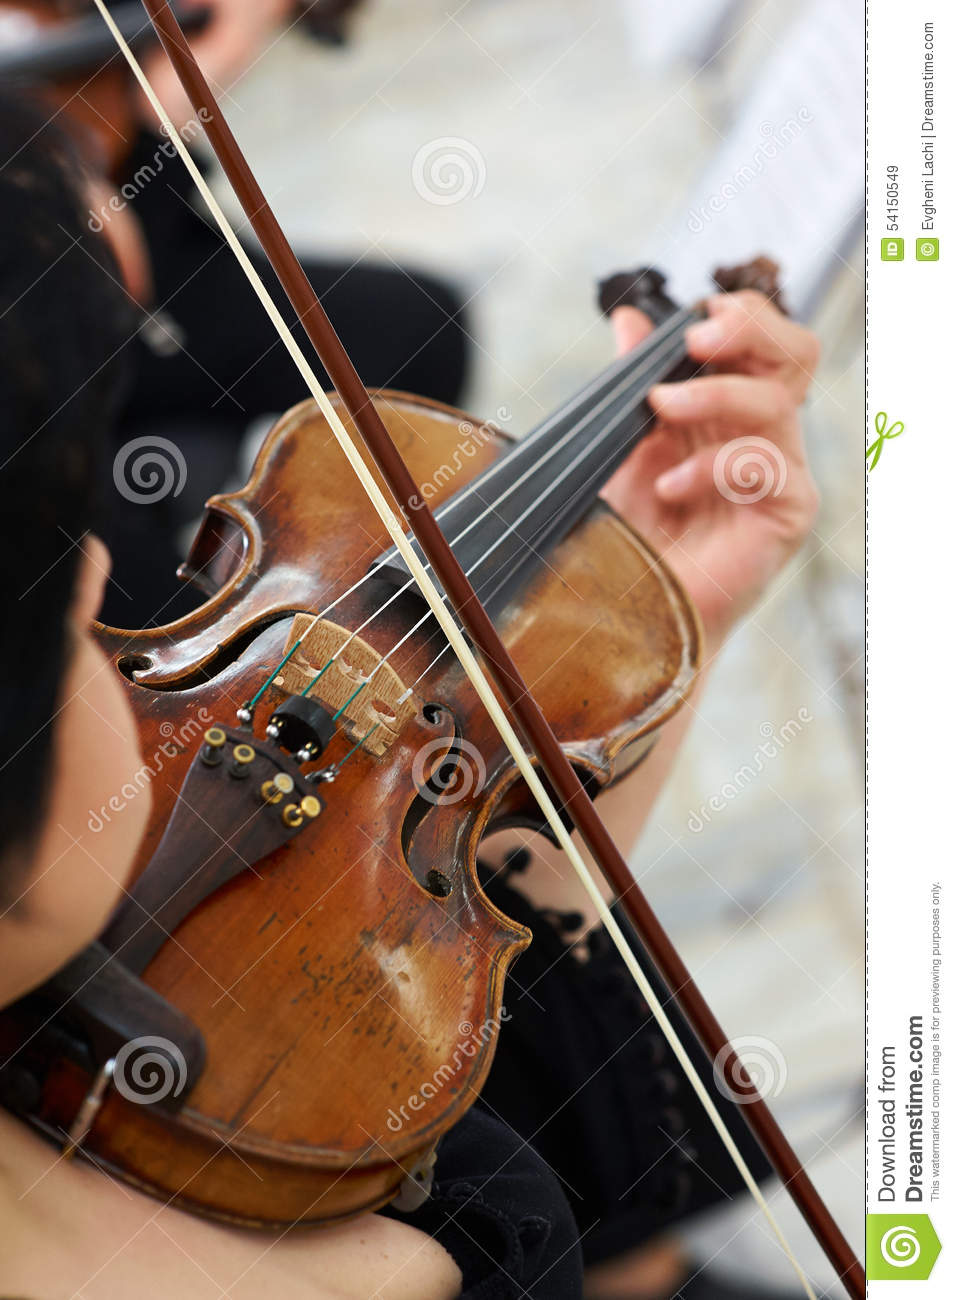 Violinista Playing Classical Violin das mulheres